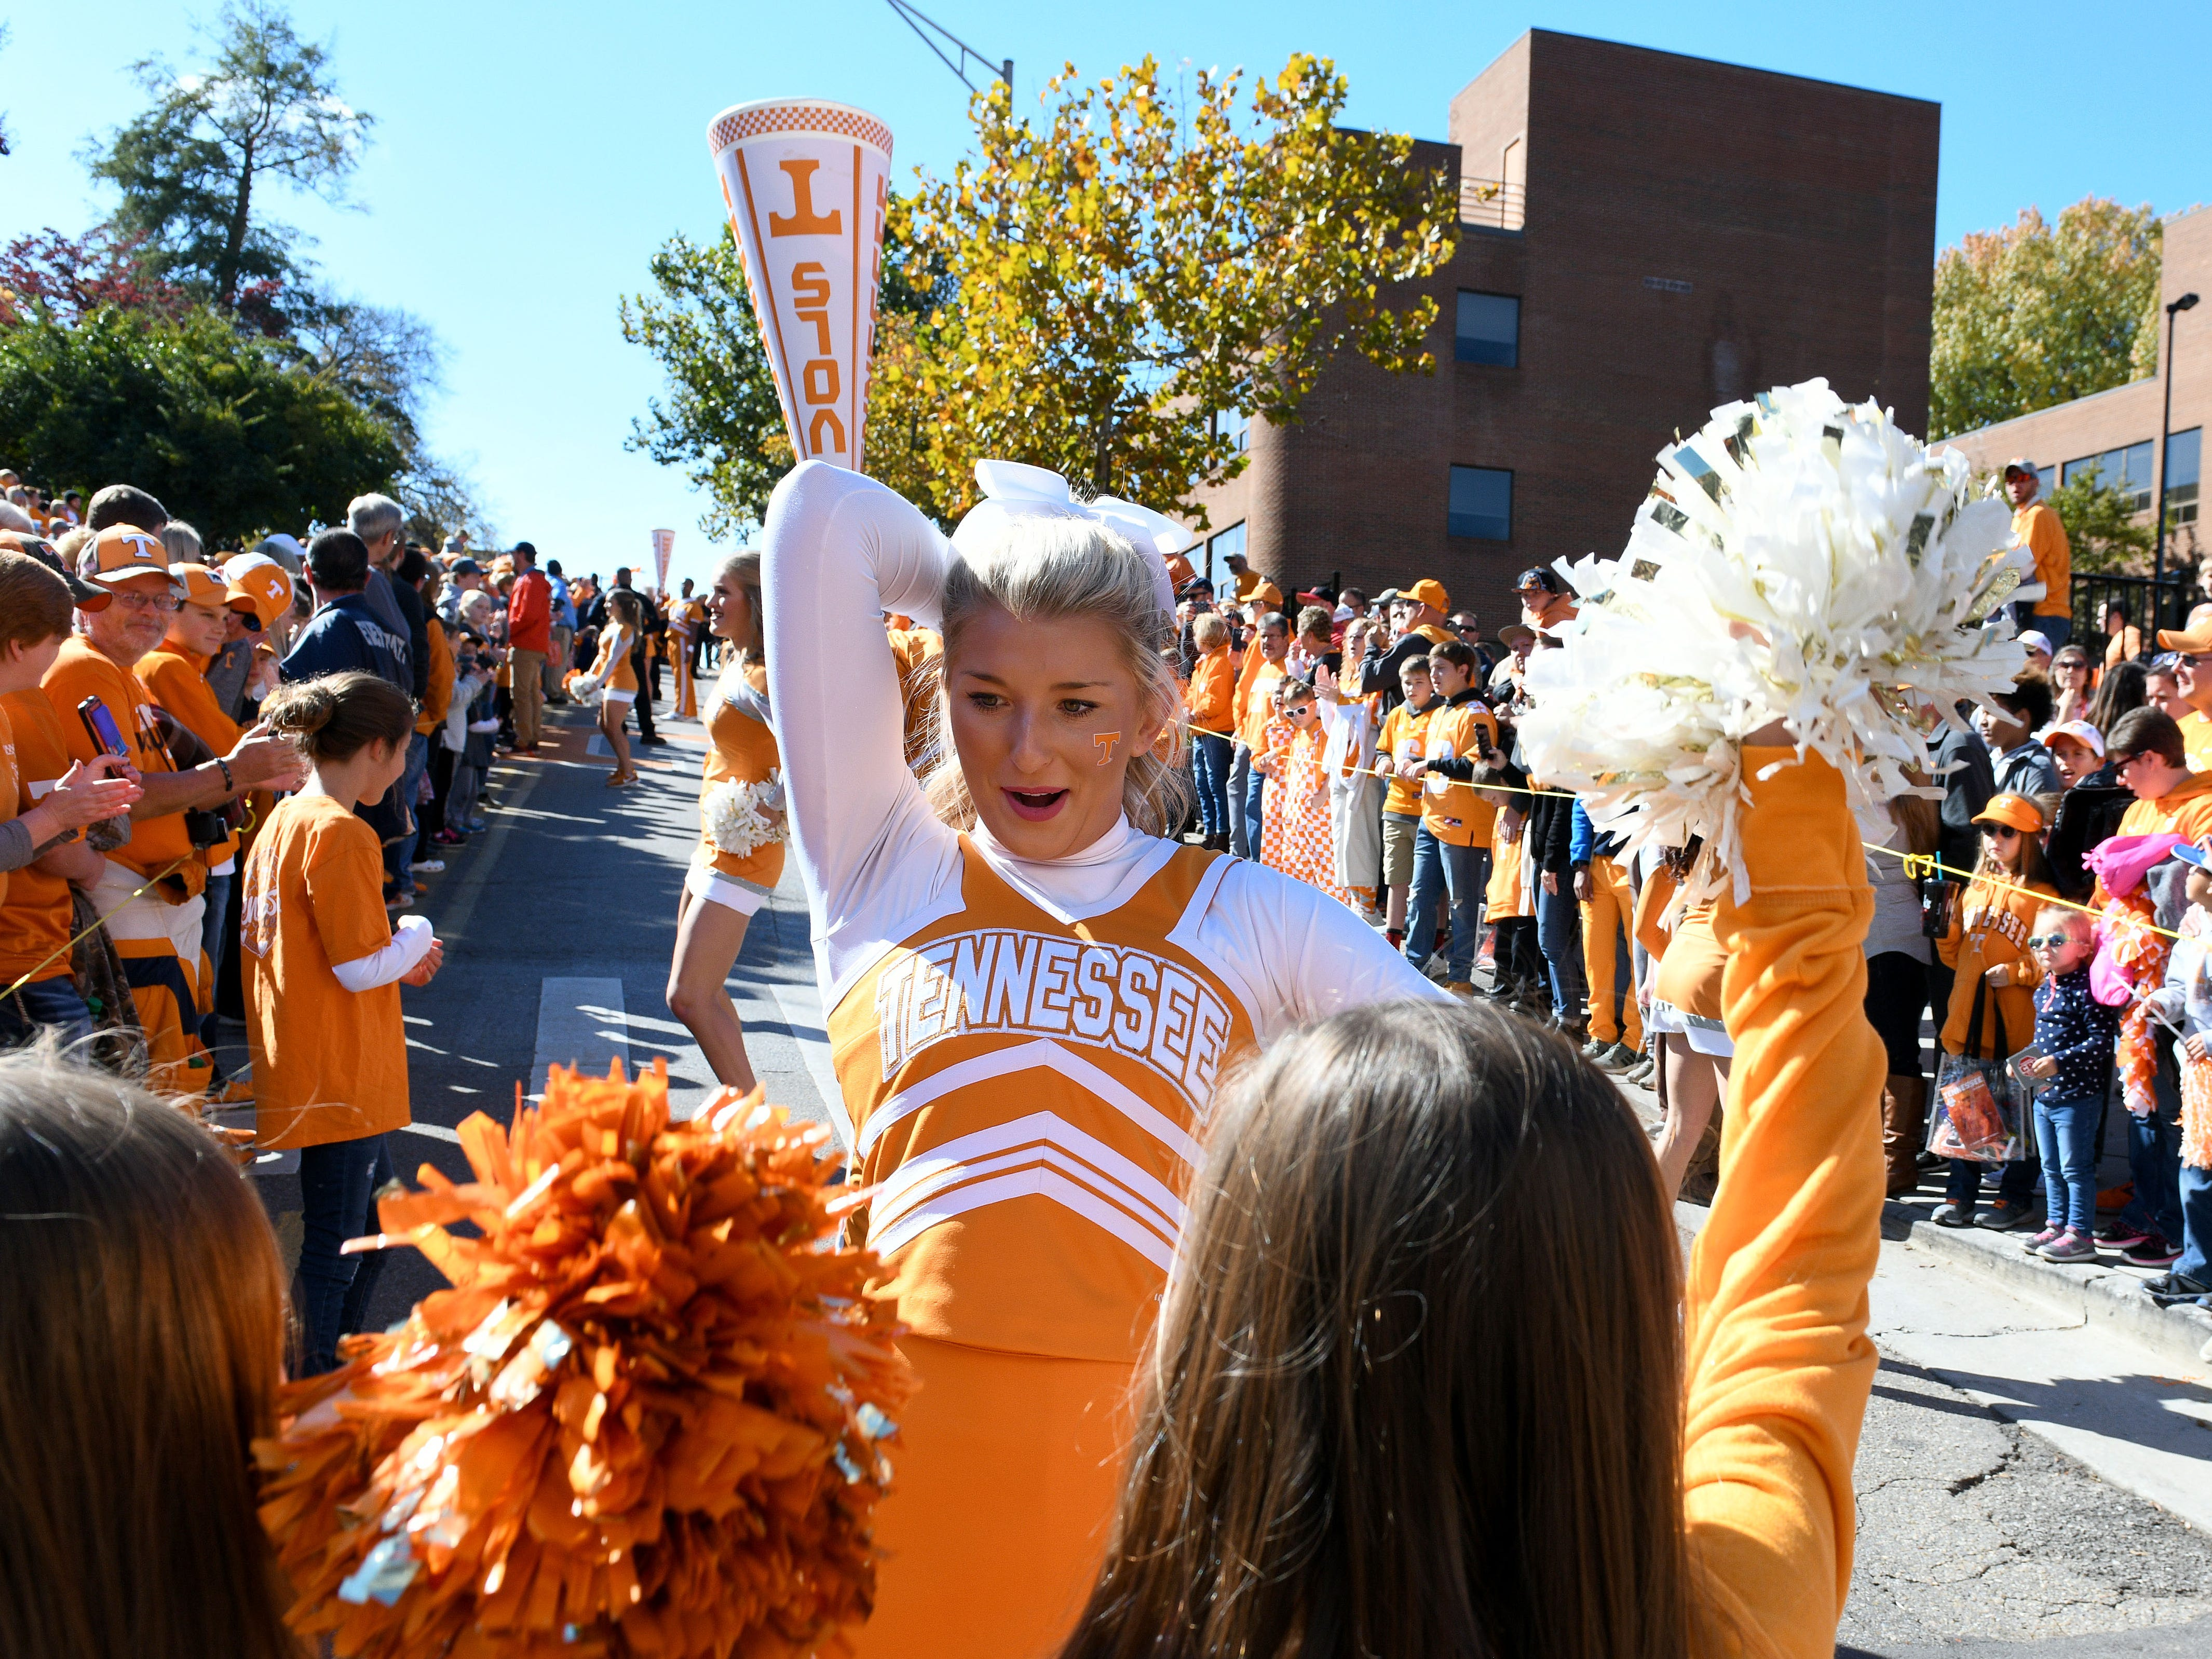 Tennessee cheerleaders during pregame activities before the game against Charlotte Saturday, November 3, 2018 at Neyland Stadium in Knoxville, Tenn.